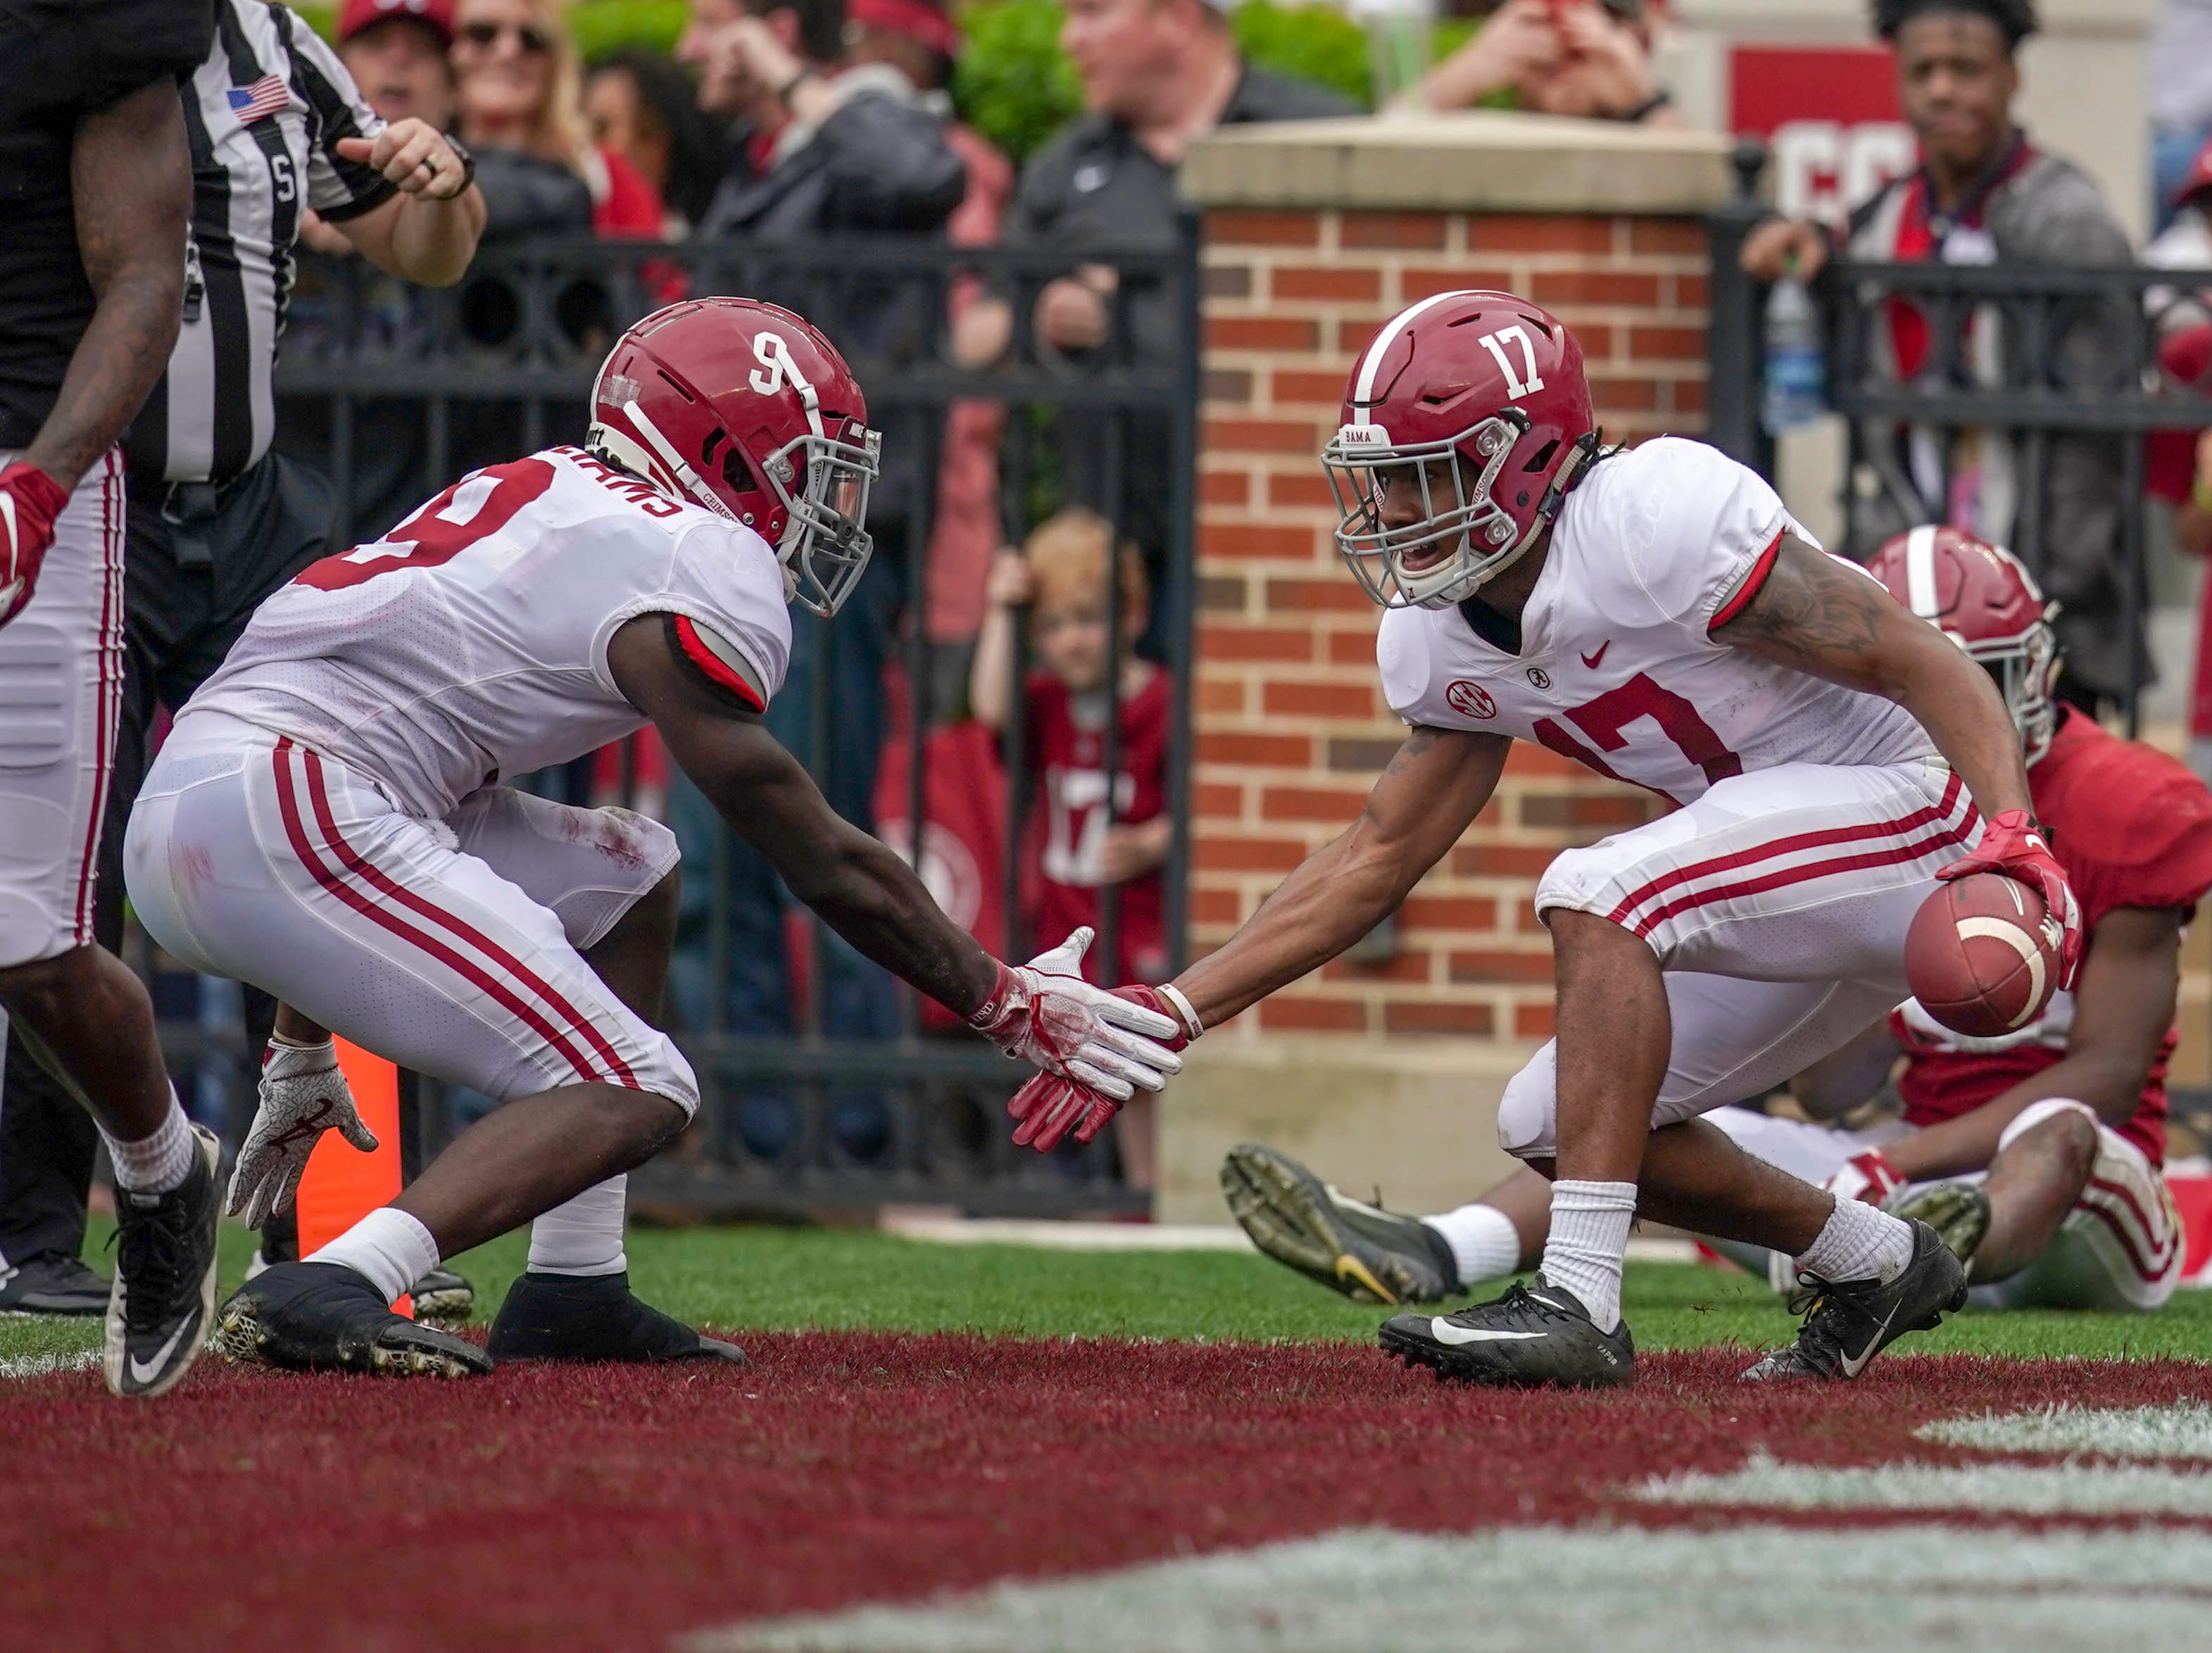 Apr 13, 2019; Tuscaloosa, AL, USA; Alabama Crimson Tide wide receiver Jaylen Waddle (17) celebrates with Alabama Crimson Tide wide receiver Xavier Williams (9) after Waddle scored a touchdown in the spring game at Bryant-Denny Stadium. Mandatory Credit: Marvin Gentry-USA TODAY Sports